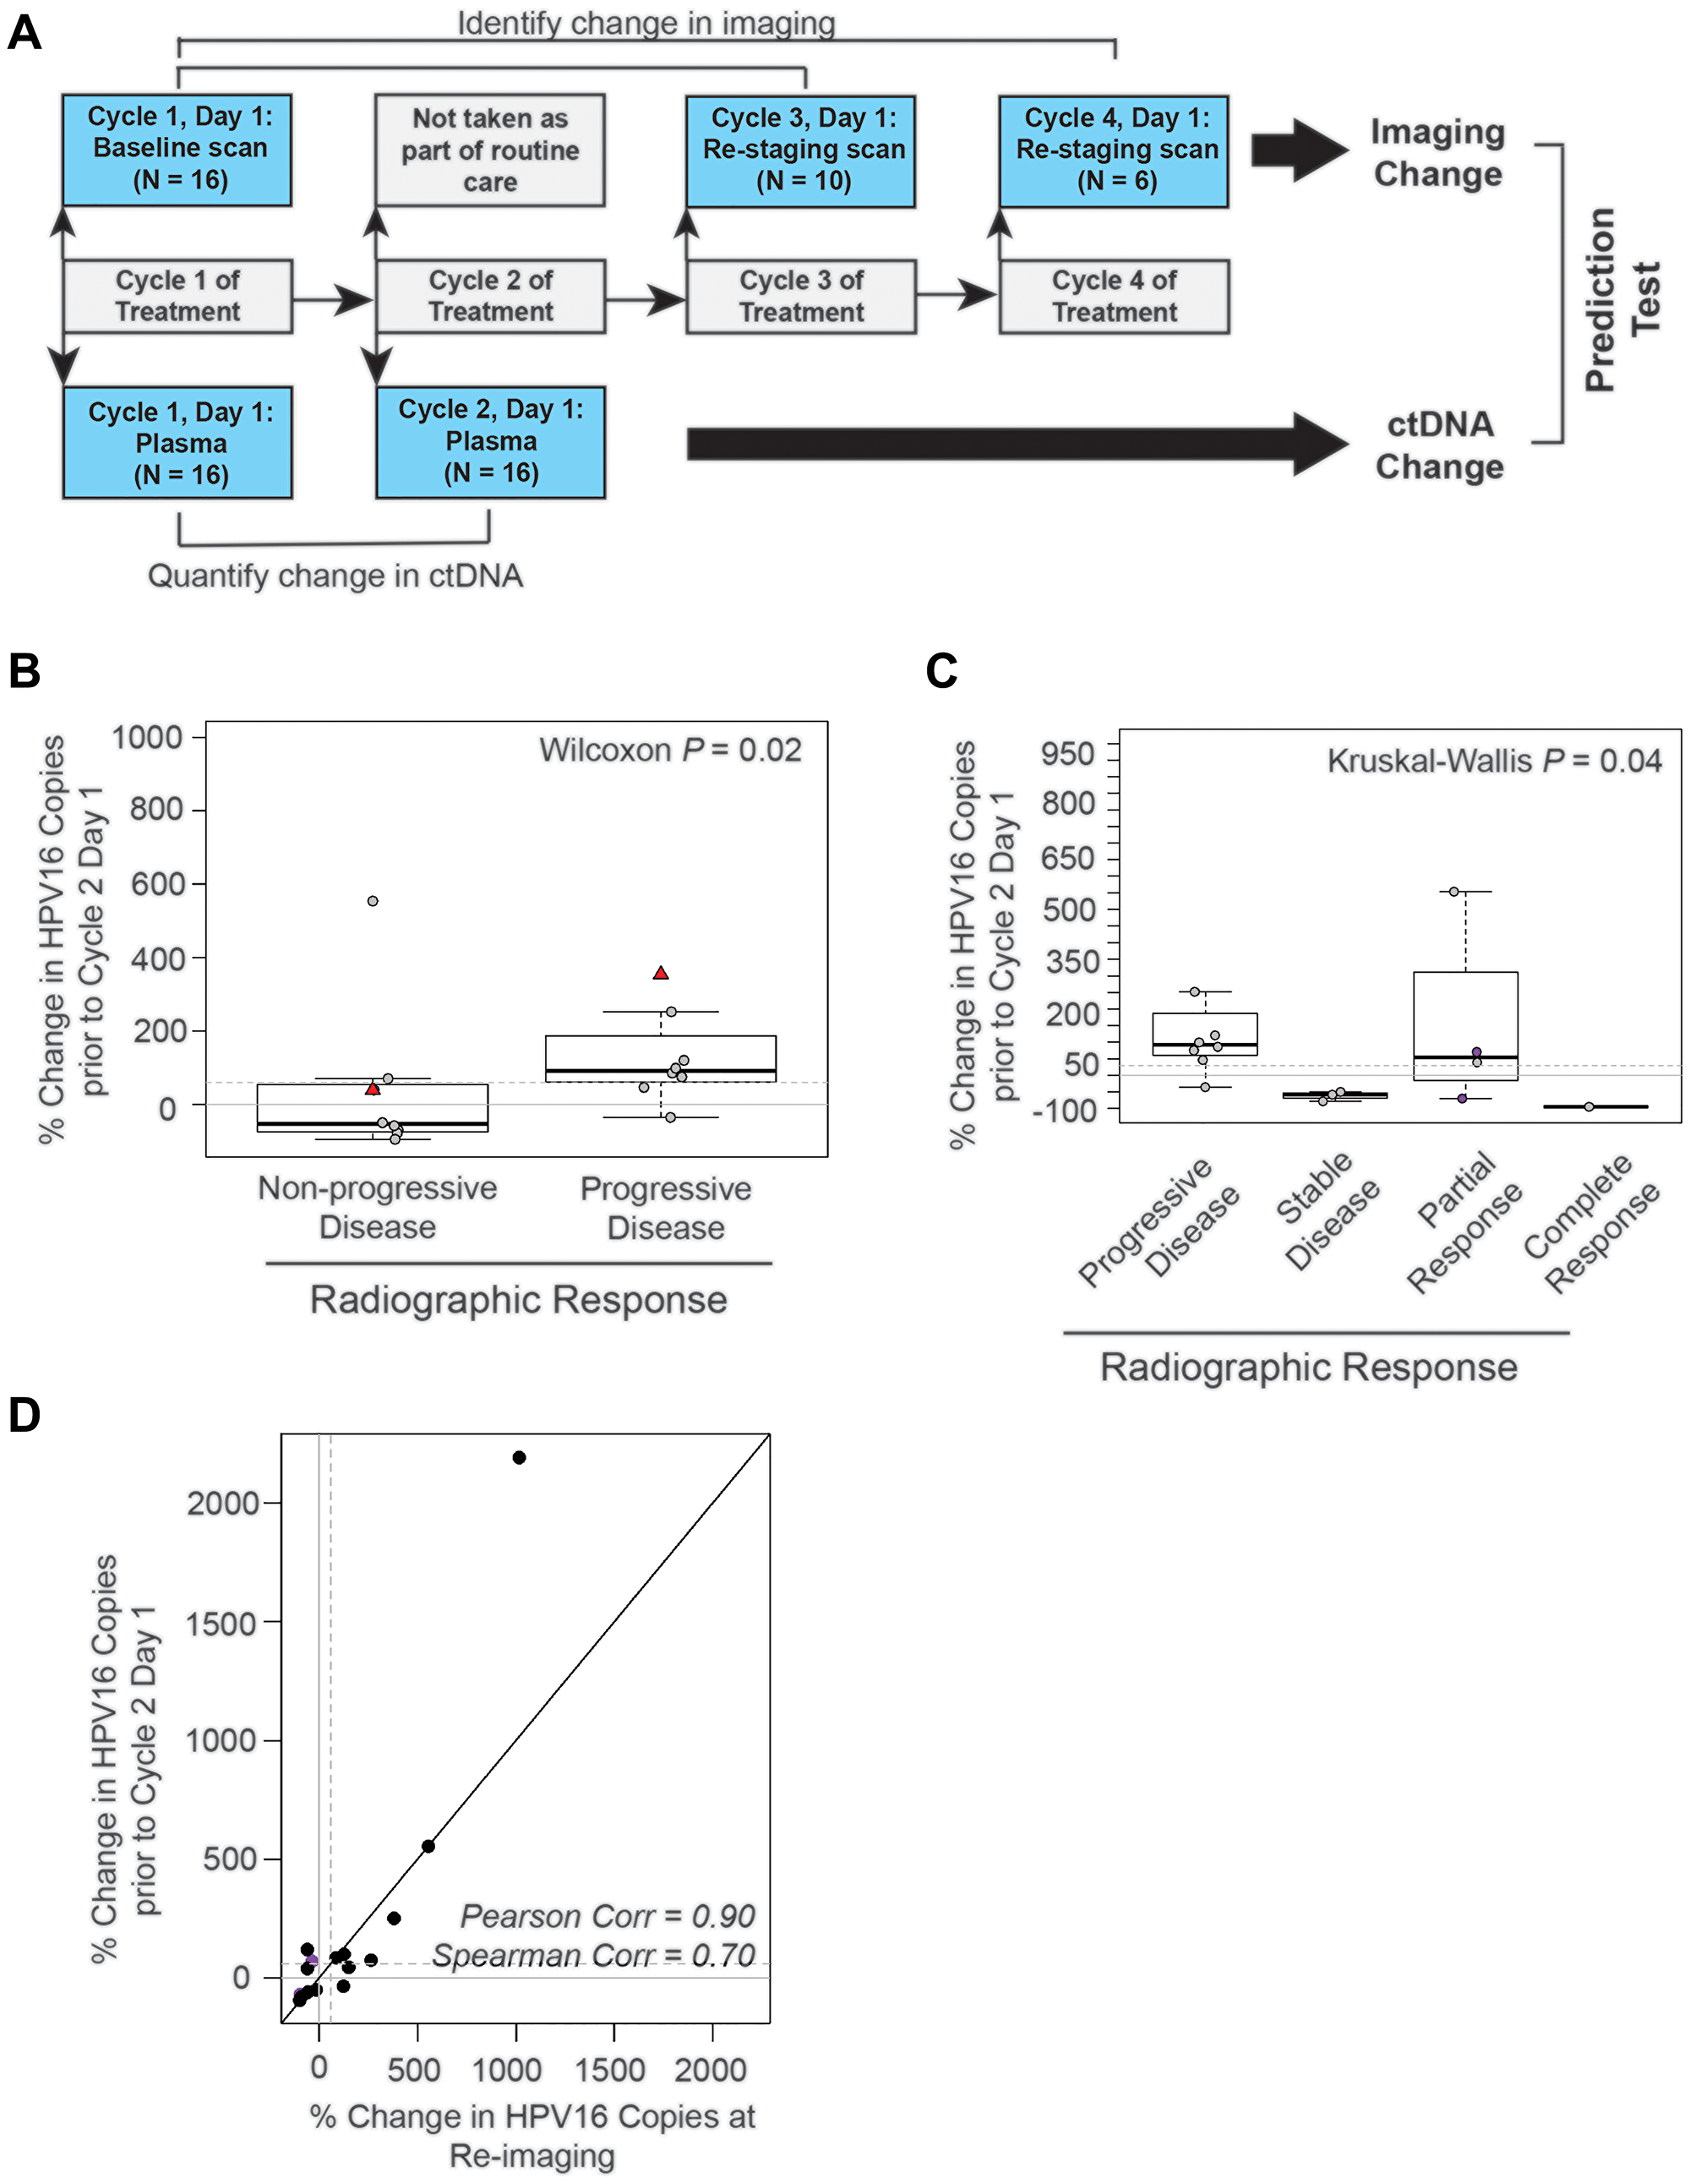 The absolute change in HPV16 ctDNA copies after one cycle of treatment predicts radiographic response in recurrent and metastatic HNSCC patients.